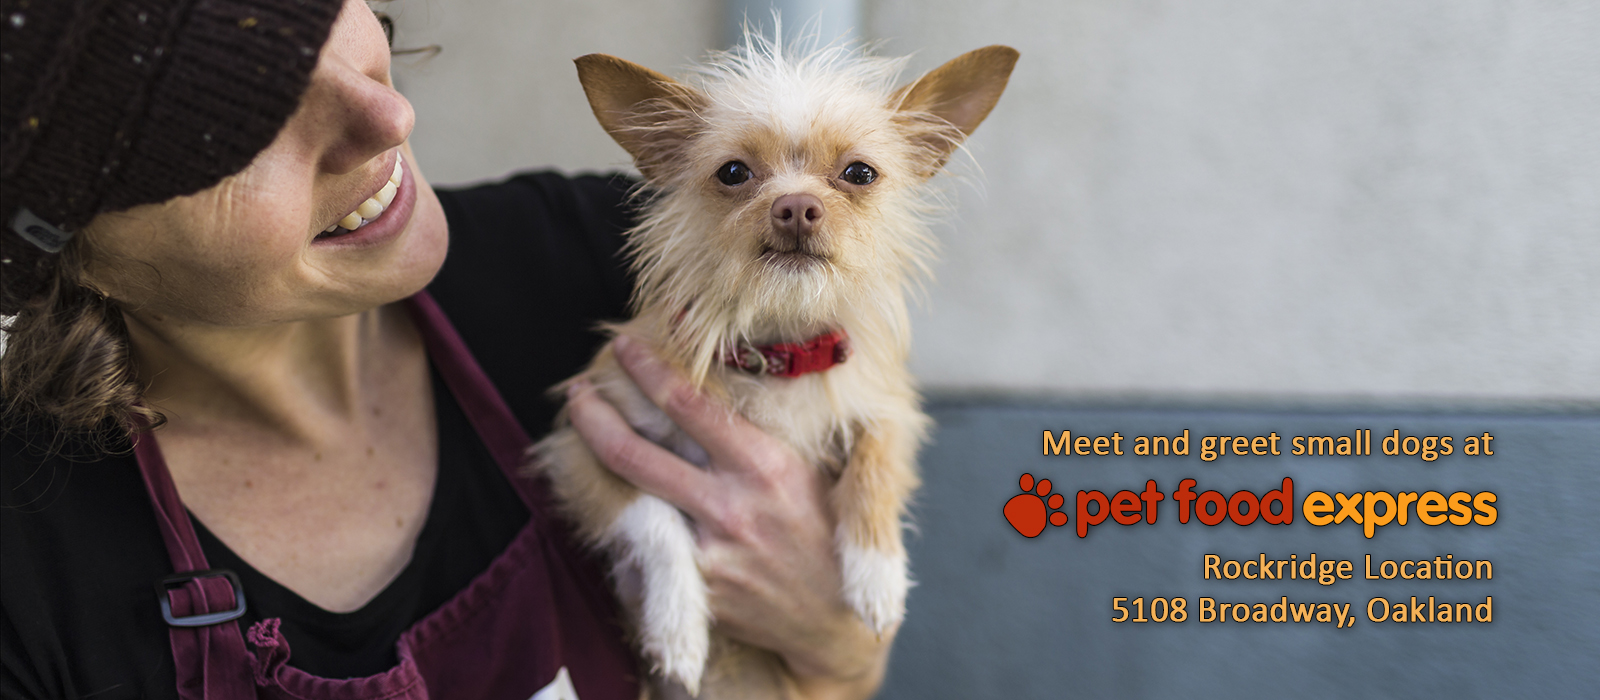 Meet small dogs at Pet Food Express Rockridge